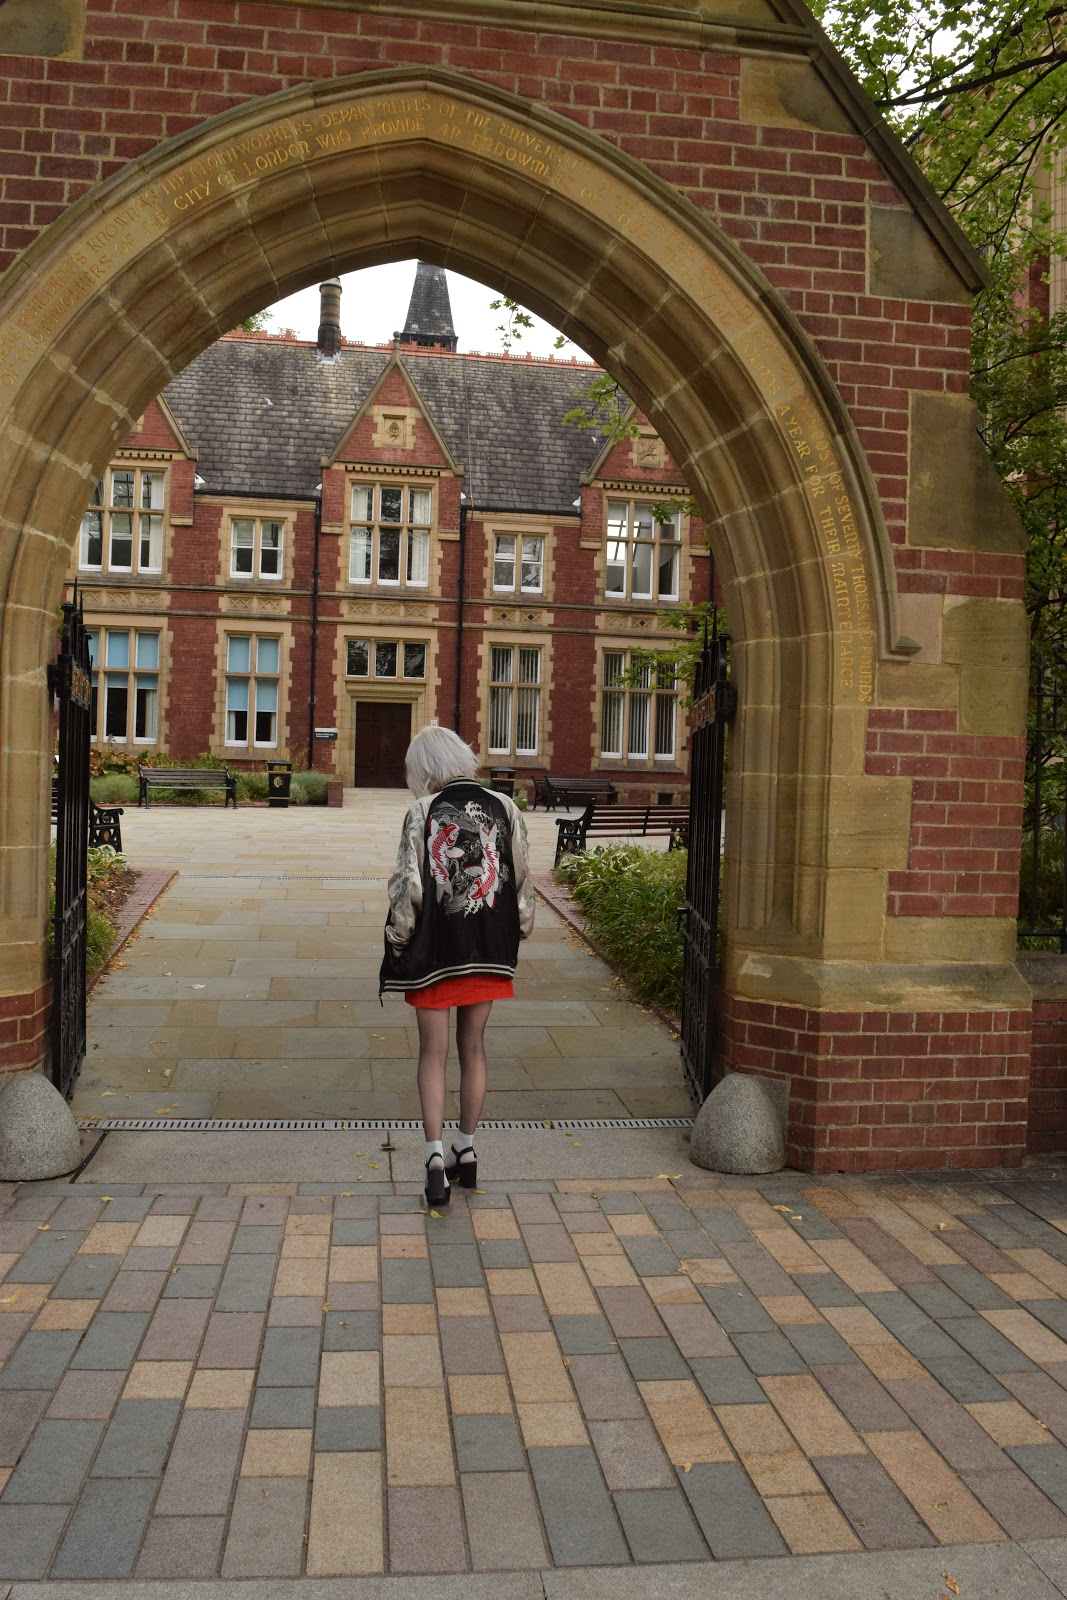 silver haired girl under archway in Leeds university wearing souvenir jacket, heels and red dress